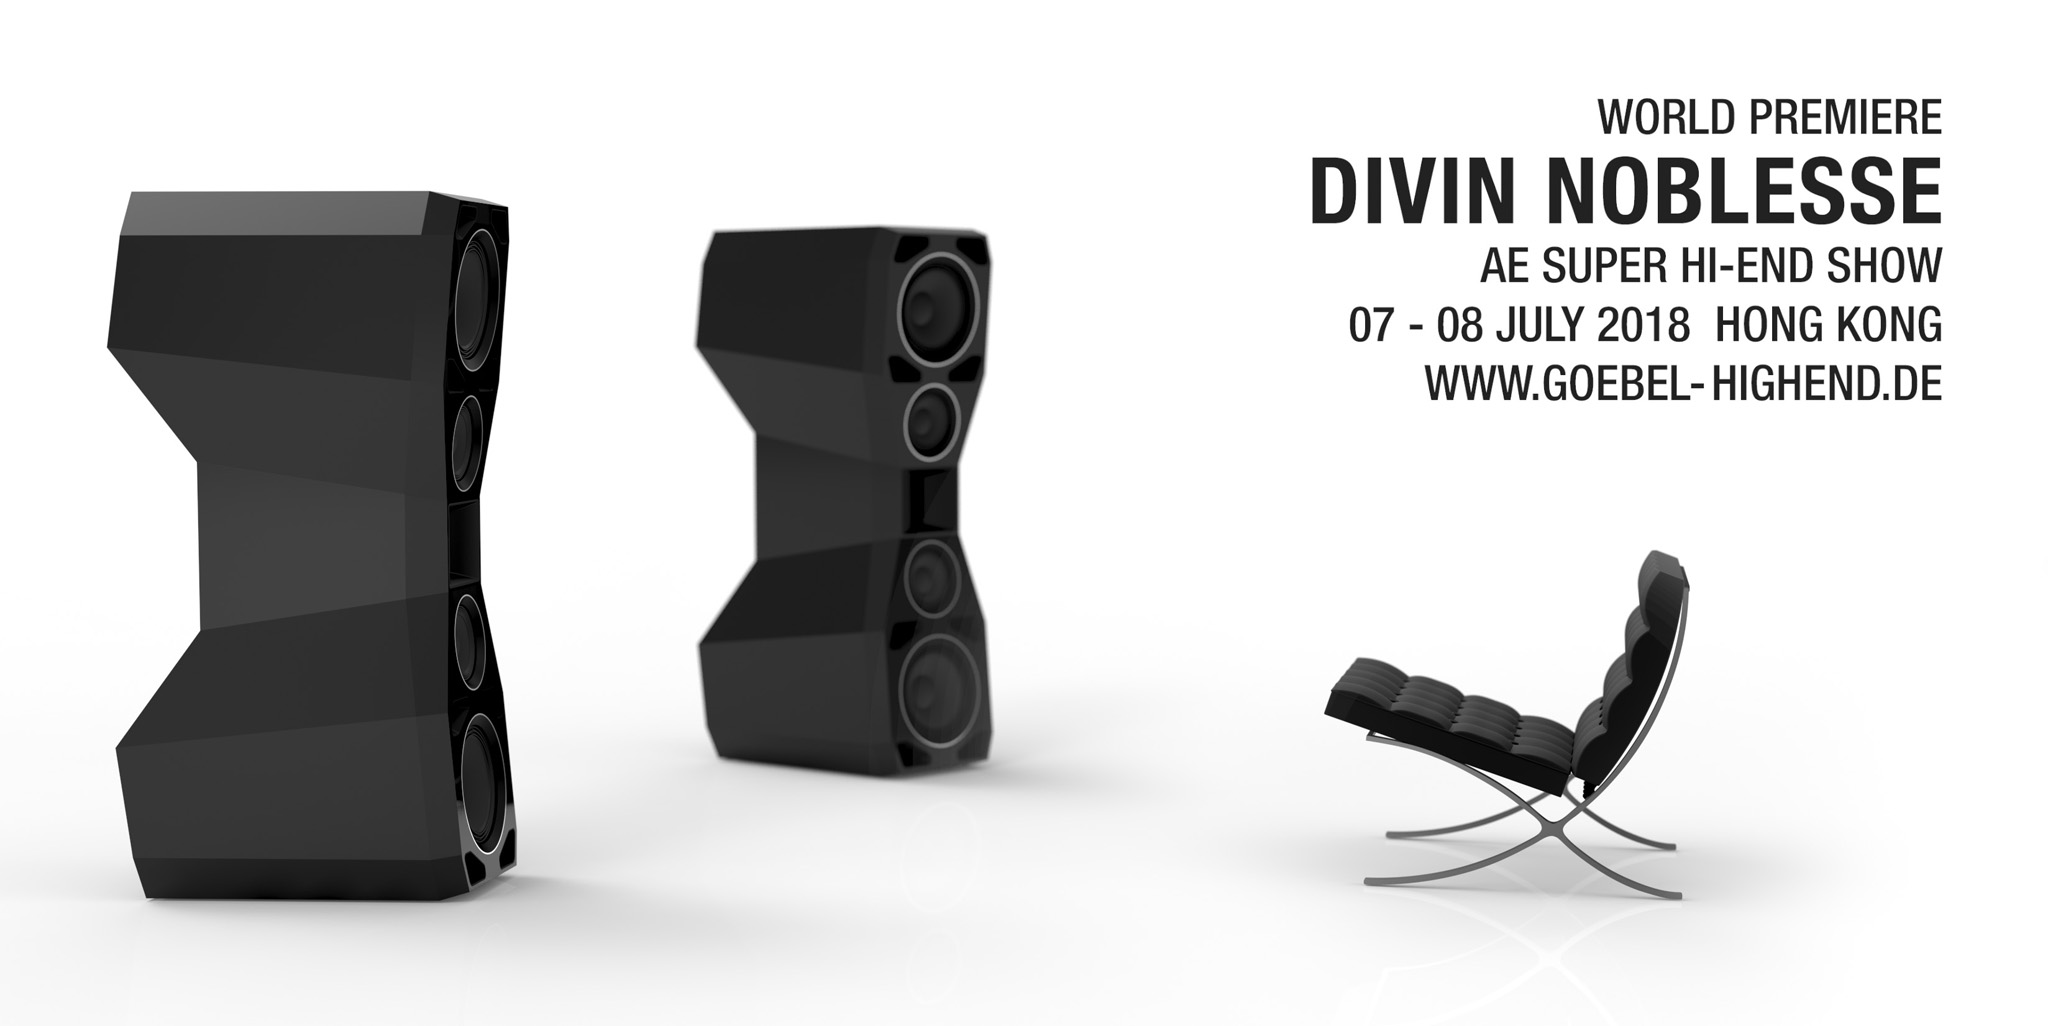 Ultra High End Speaker Divin Noblesse